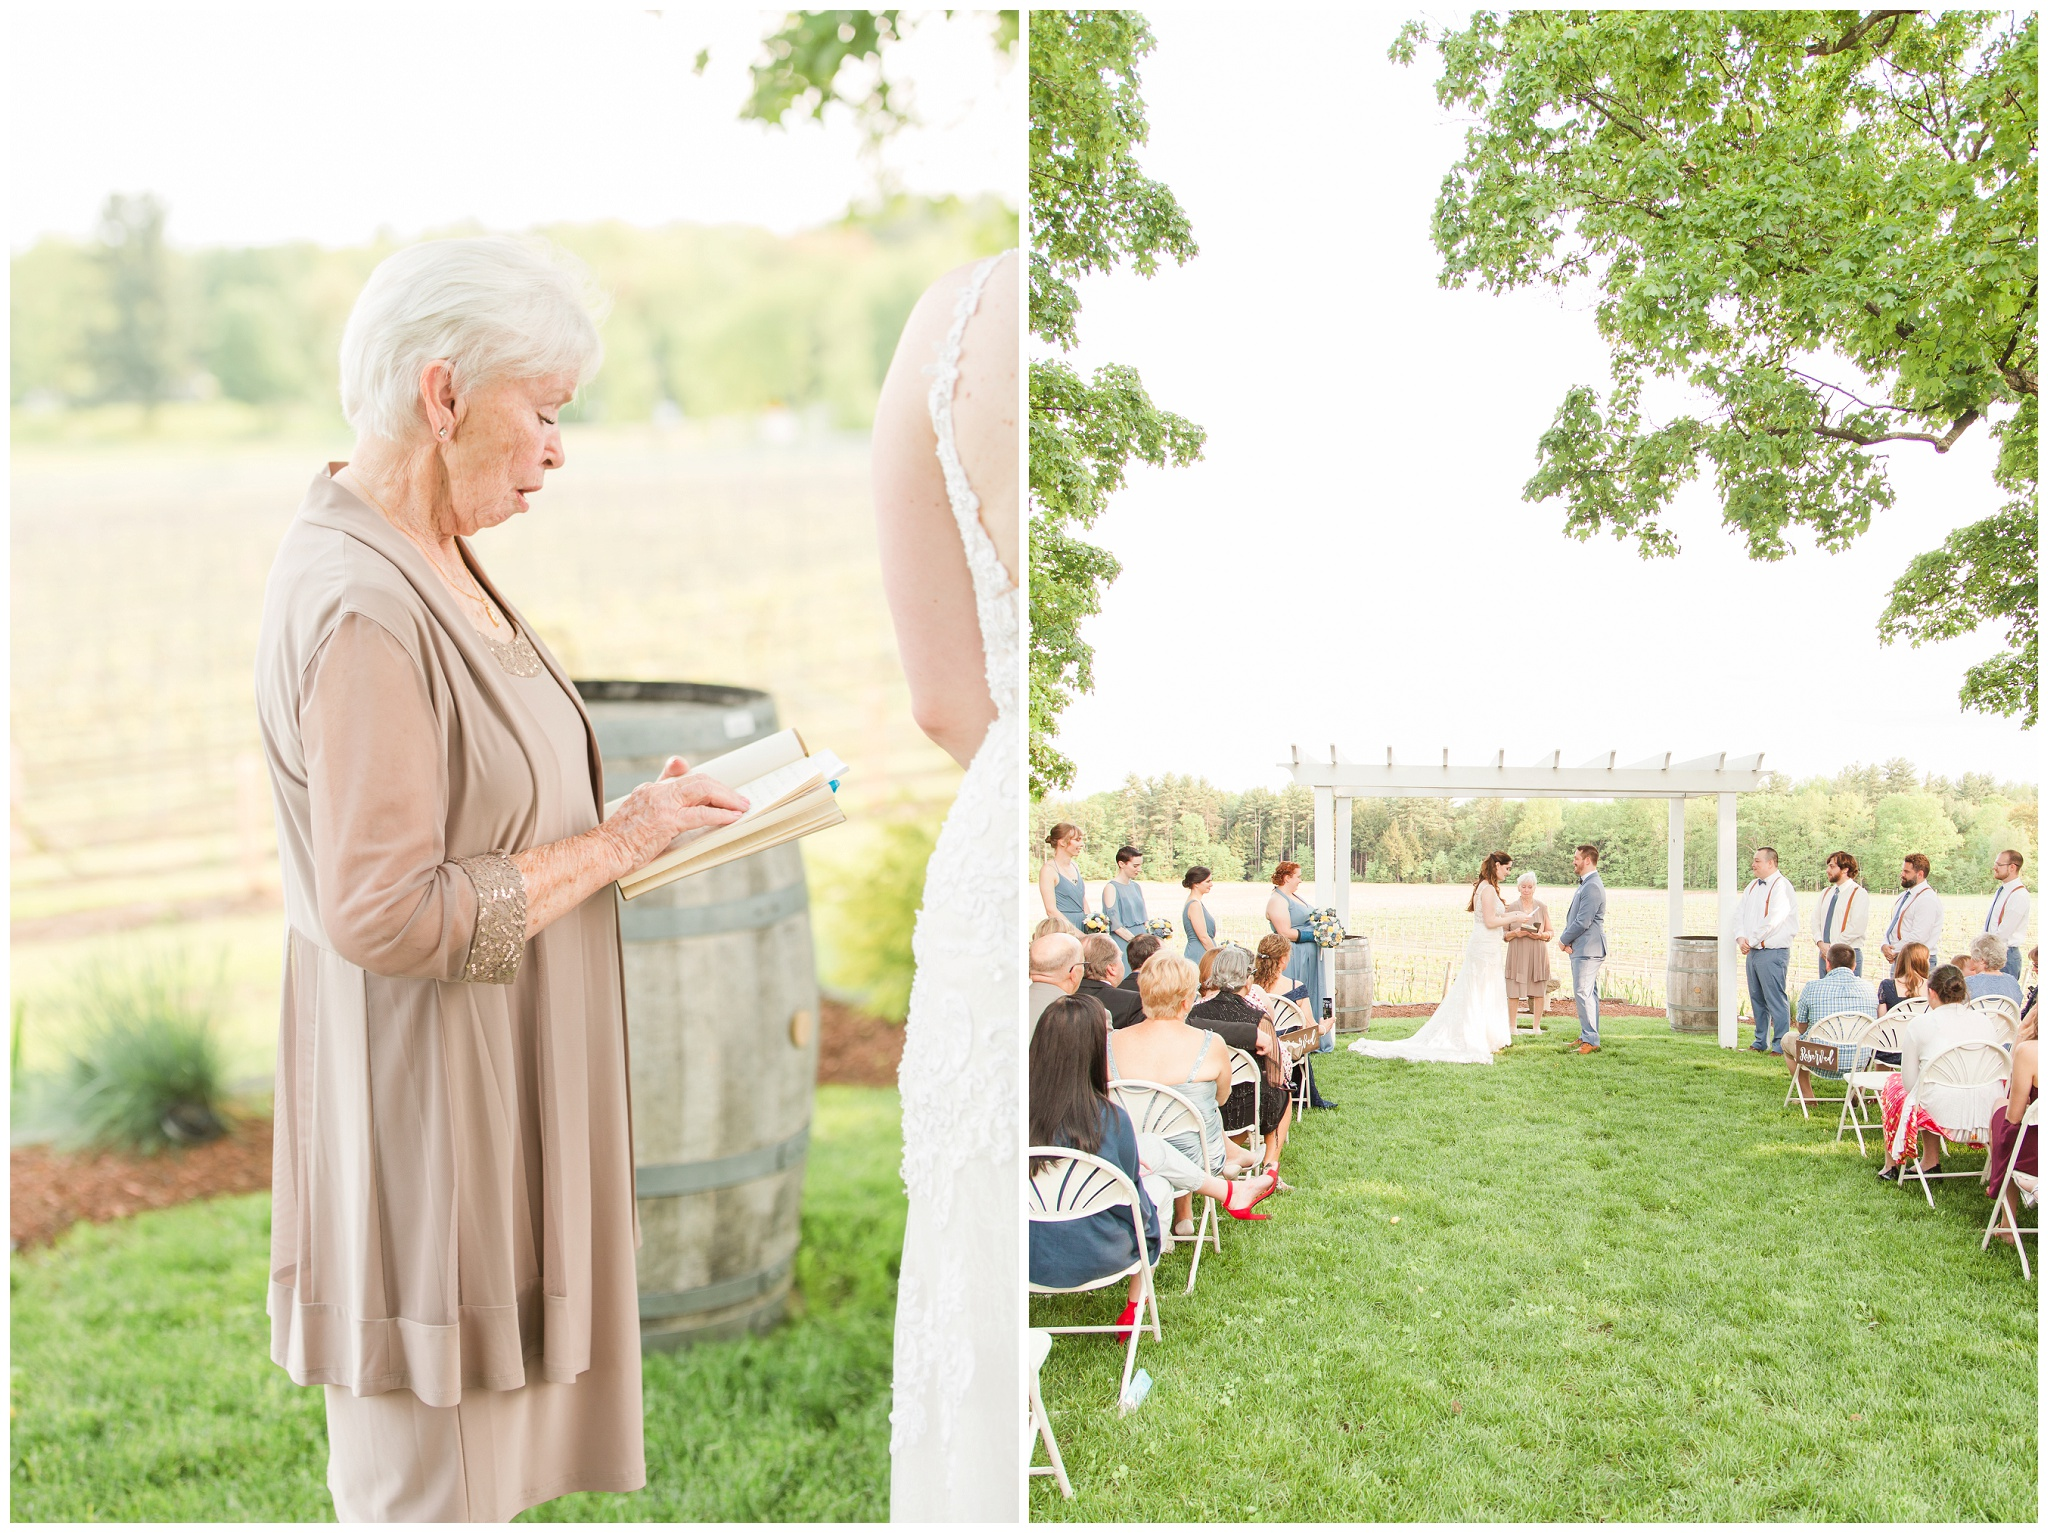 nh-wedding-photographer-flag-hill-winery-wedding-new-hampshire-outdoor-ceremony_0113.jpg